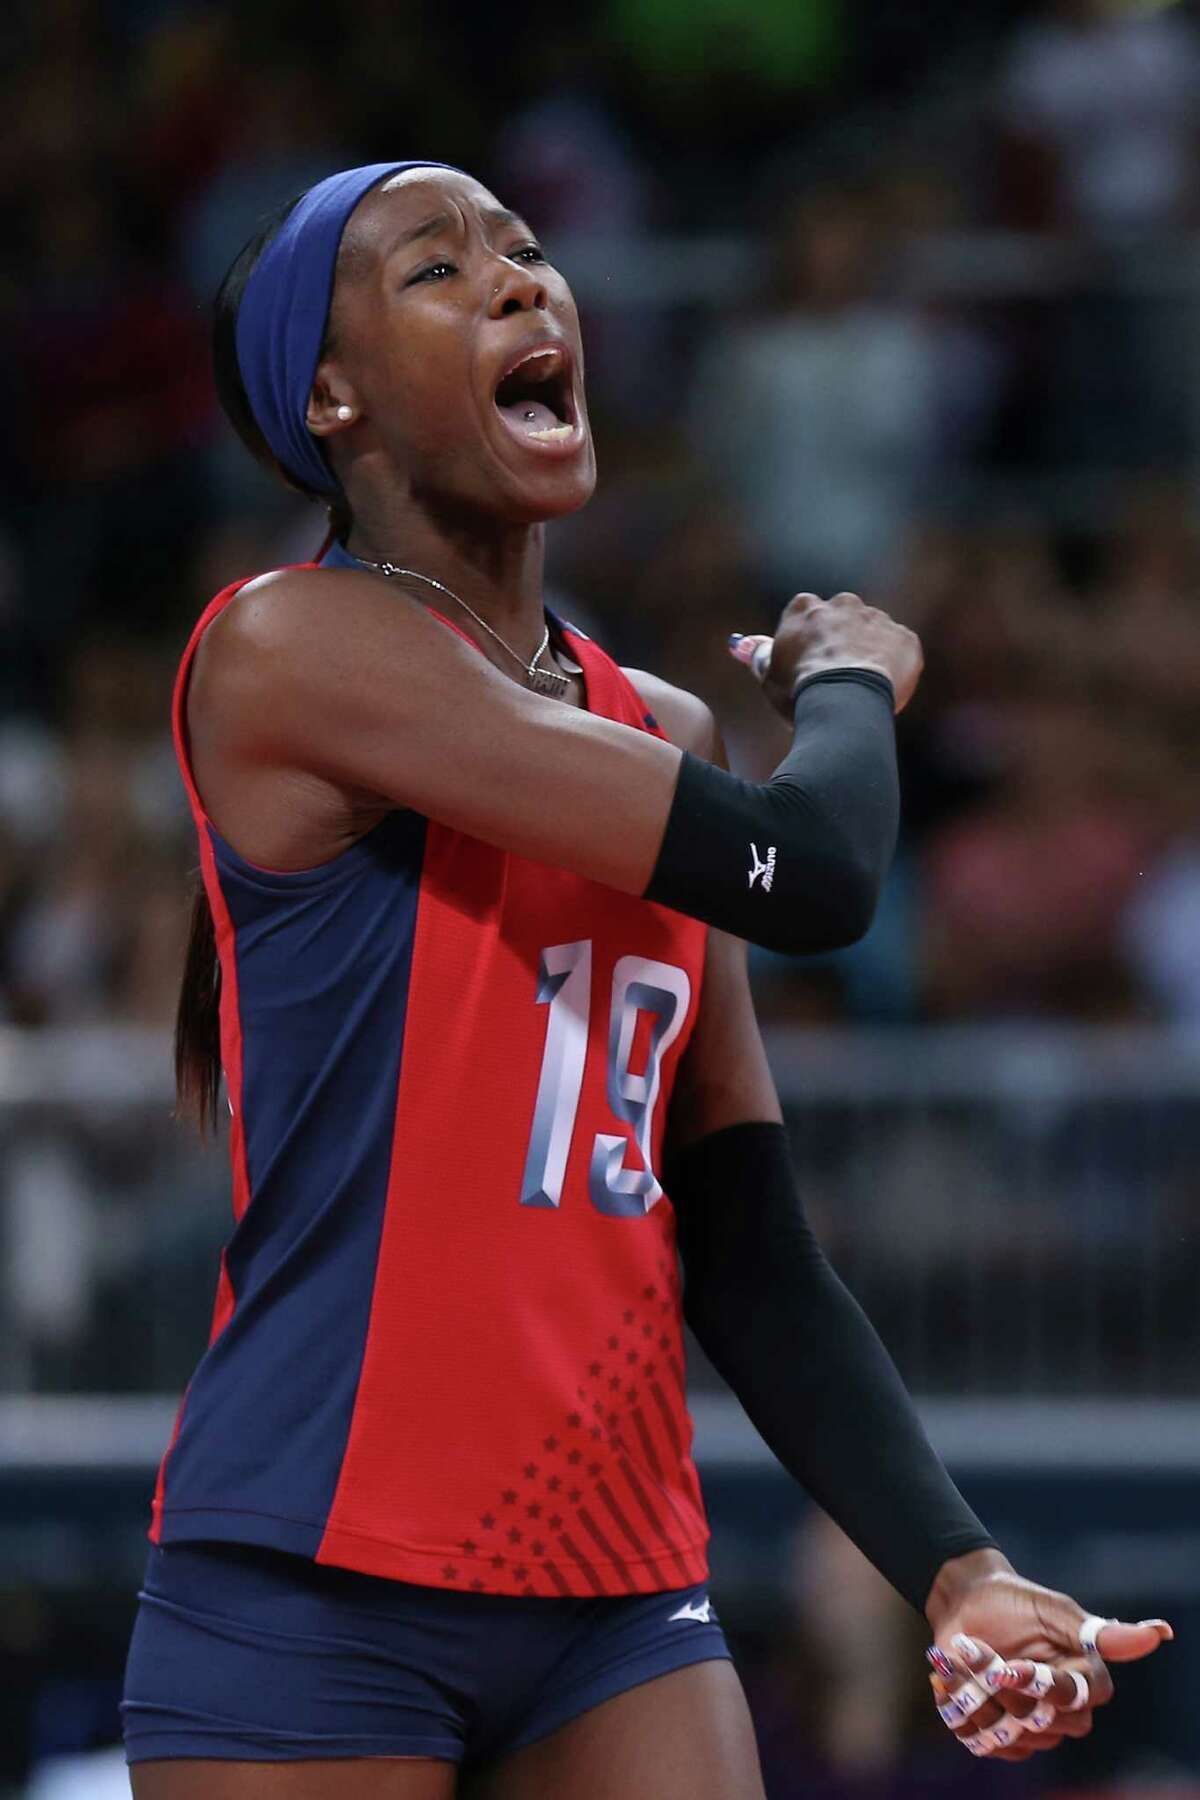 Paced the top-ranked U.S. women's volleyball team to a silver medal at the Olympic Games in London. Playing as a right-side hitter, she led the Olympics tournament with a 37.93 spike percentage, connecting on 136 spikes overall. She was second in scoring (161) in the tournament, behind only Kim Yeon-Koung of Korea. The United States finished with a 7-1 record, losing only to Brazil 3-1 in the gold-medal match.